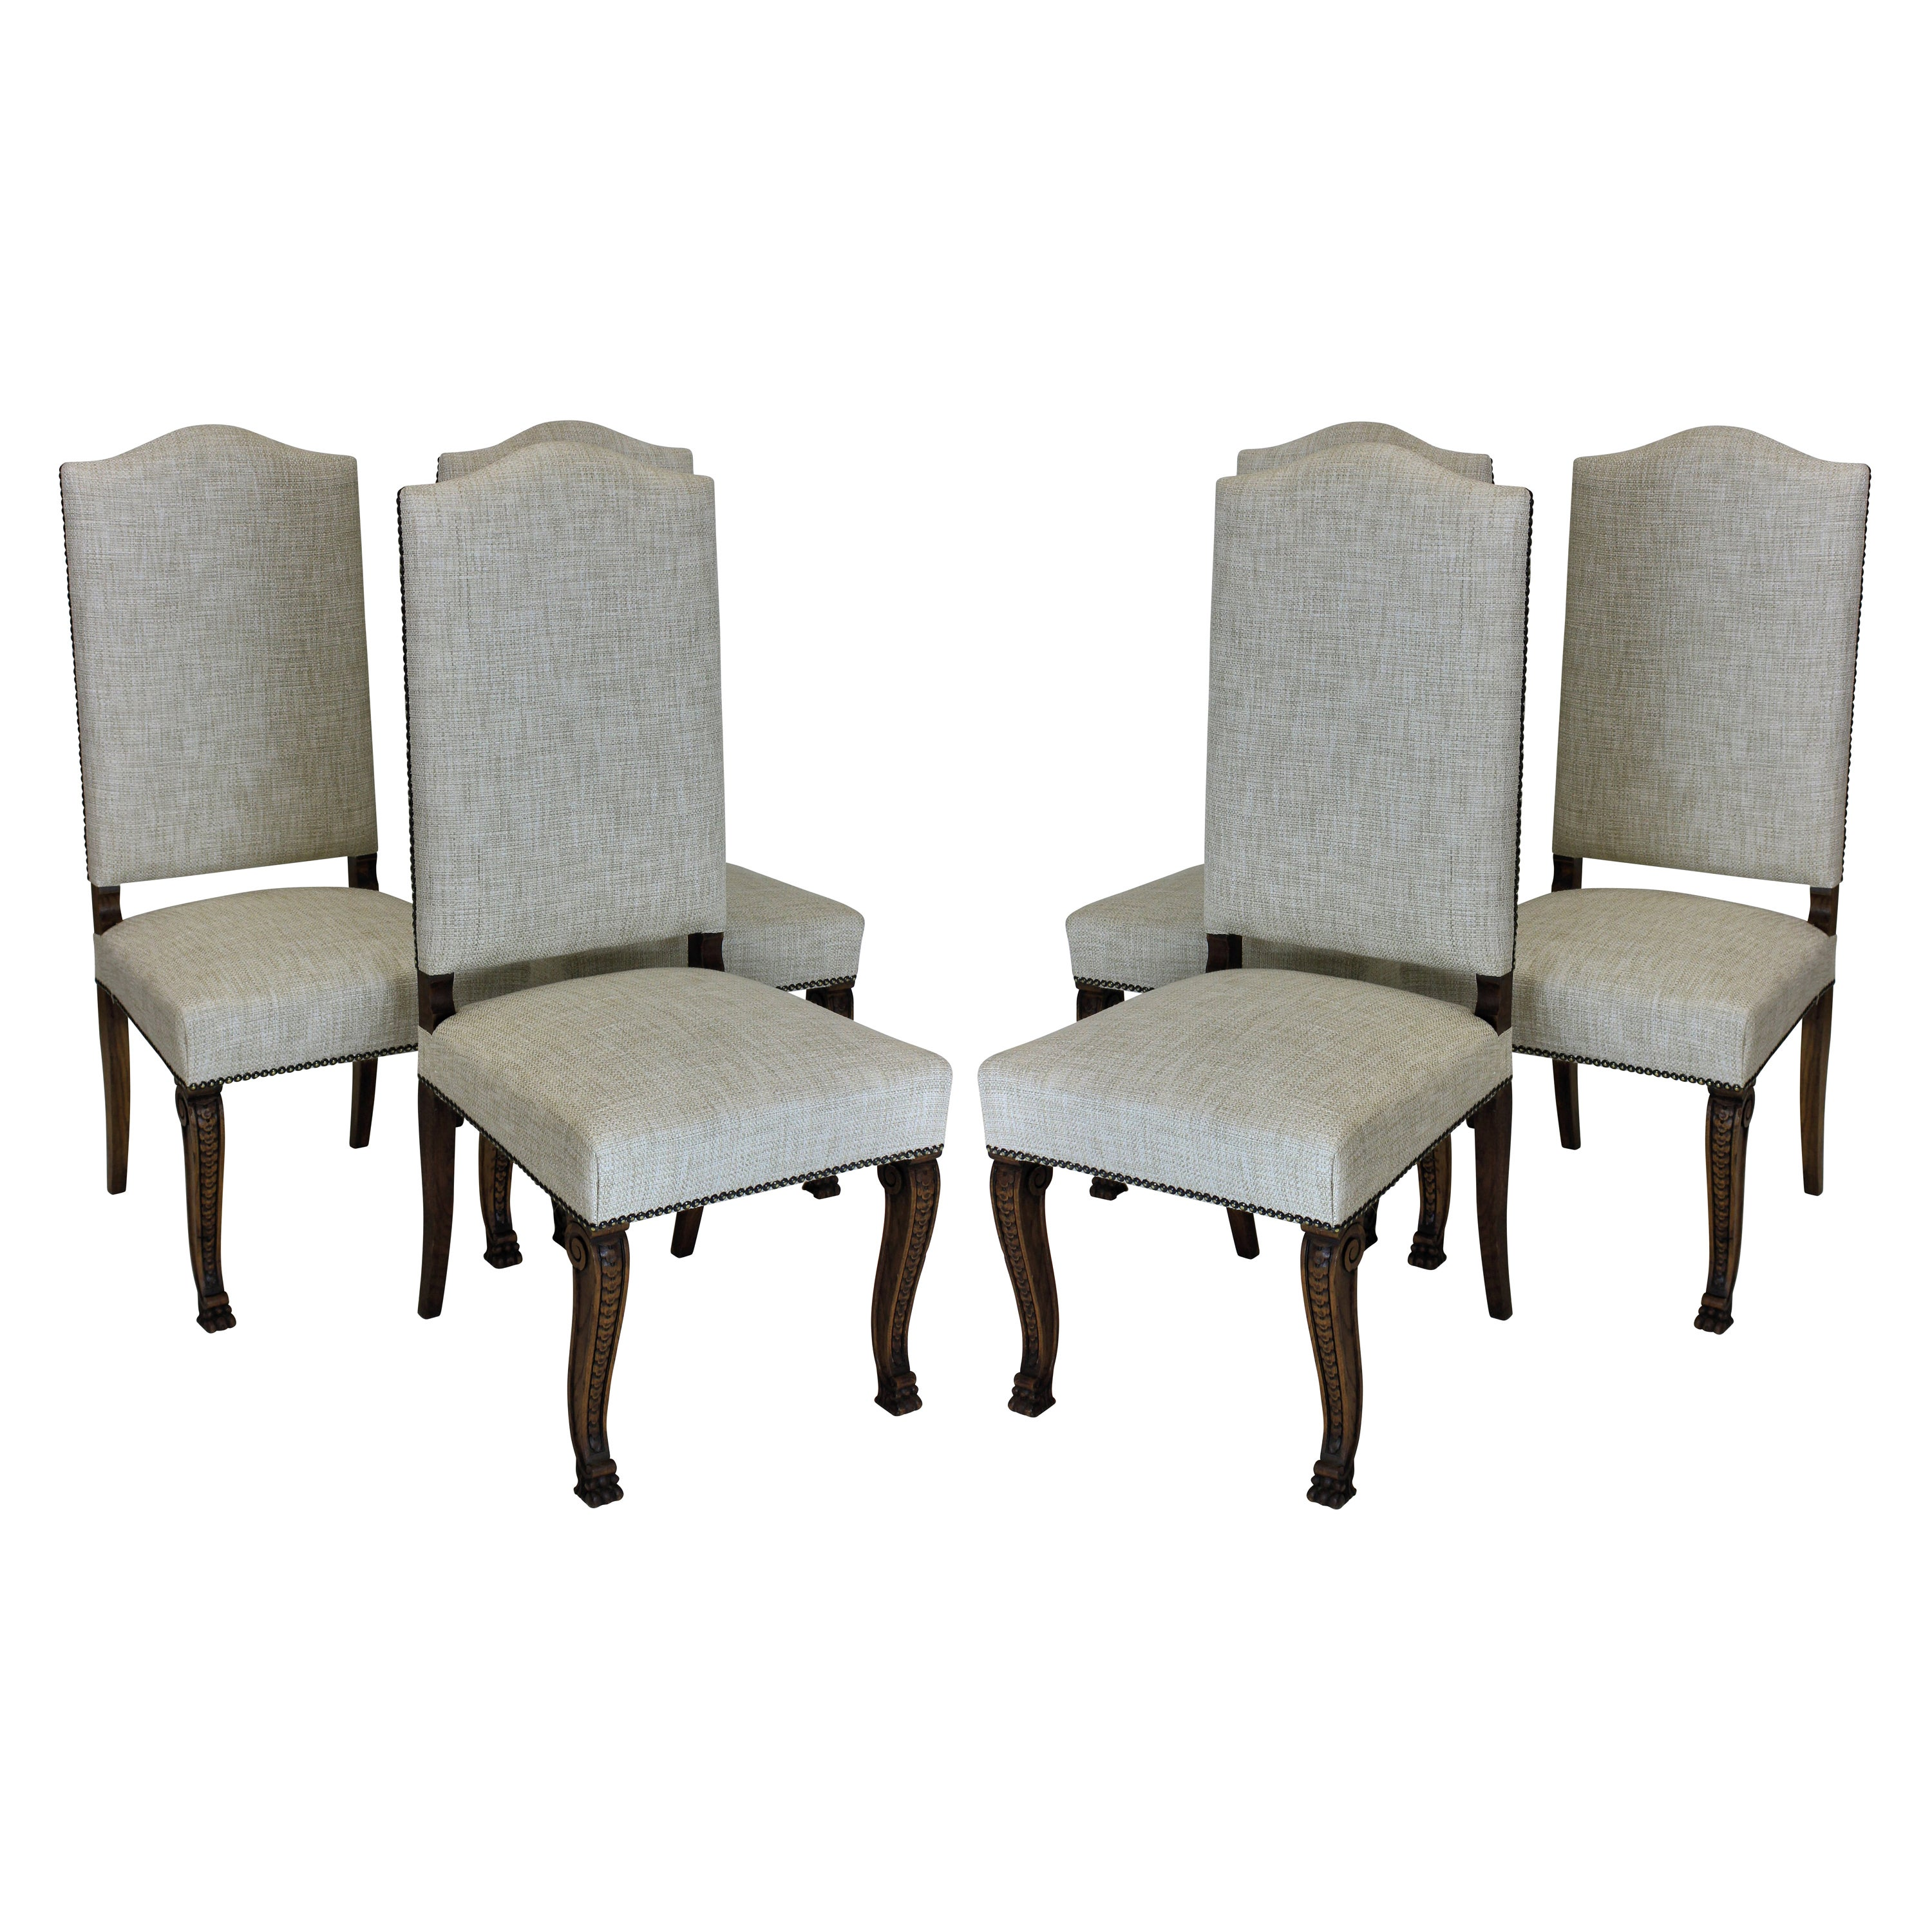 Studded Dining Chairs Six French High Back Dining Chairs